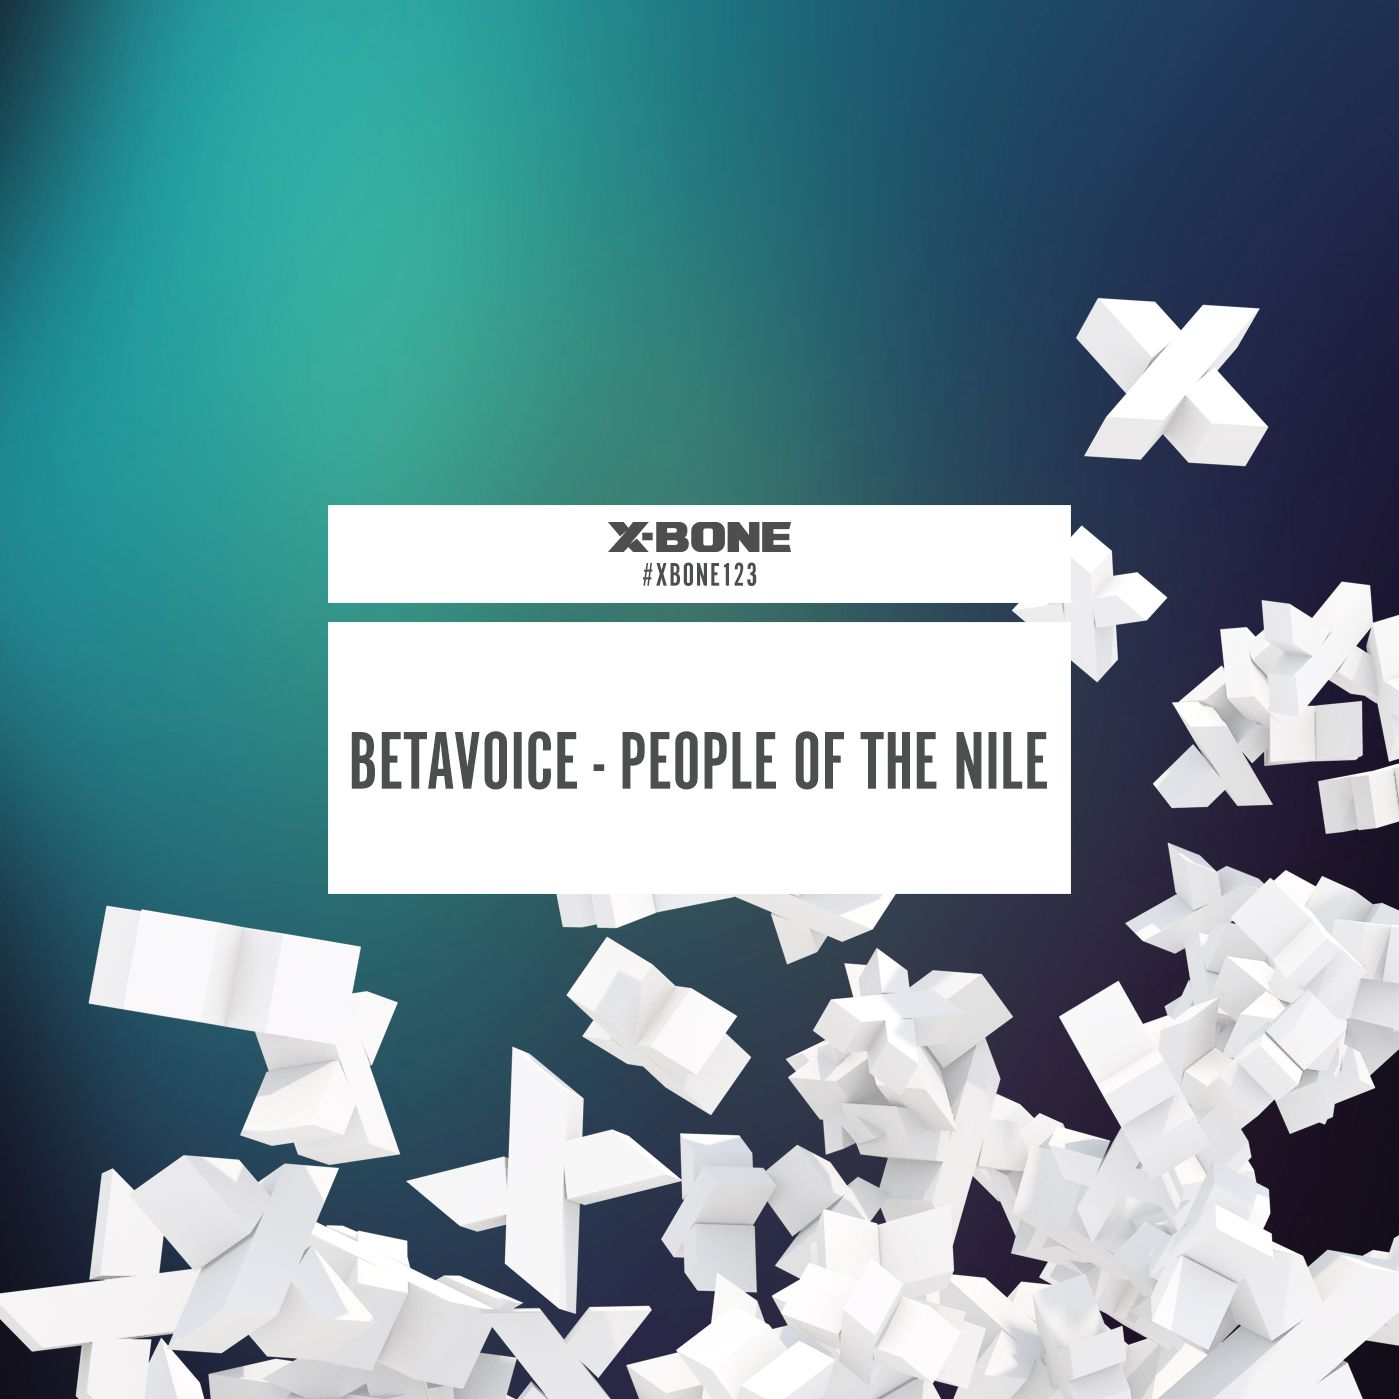 Betavoice - People Of The Nile [X-BONE RECORDS] XBONE123